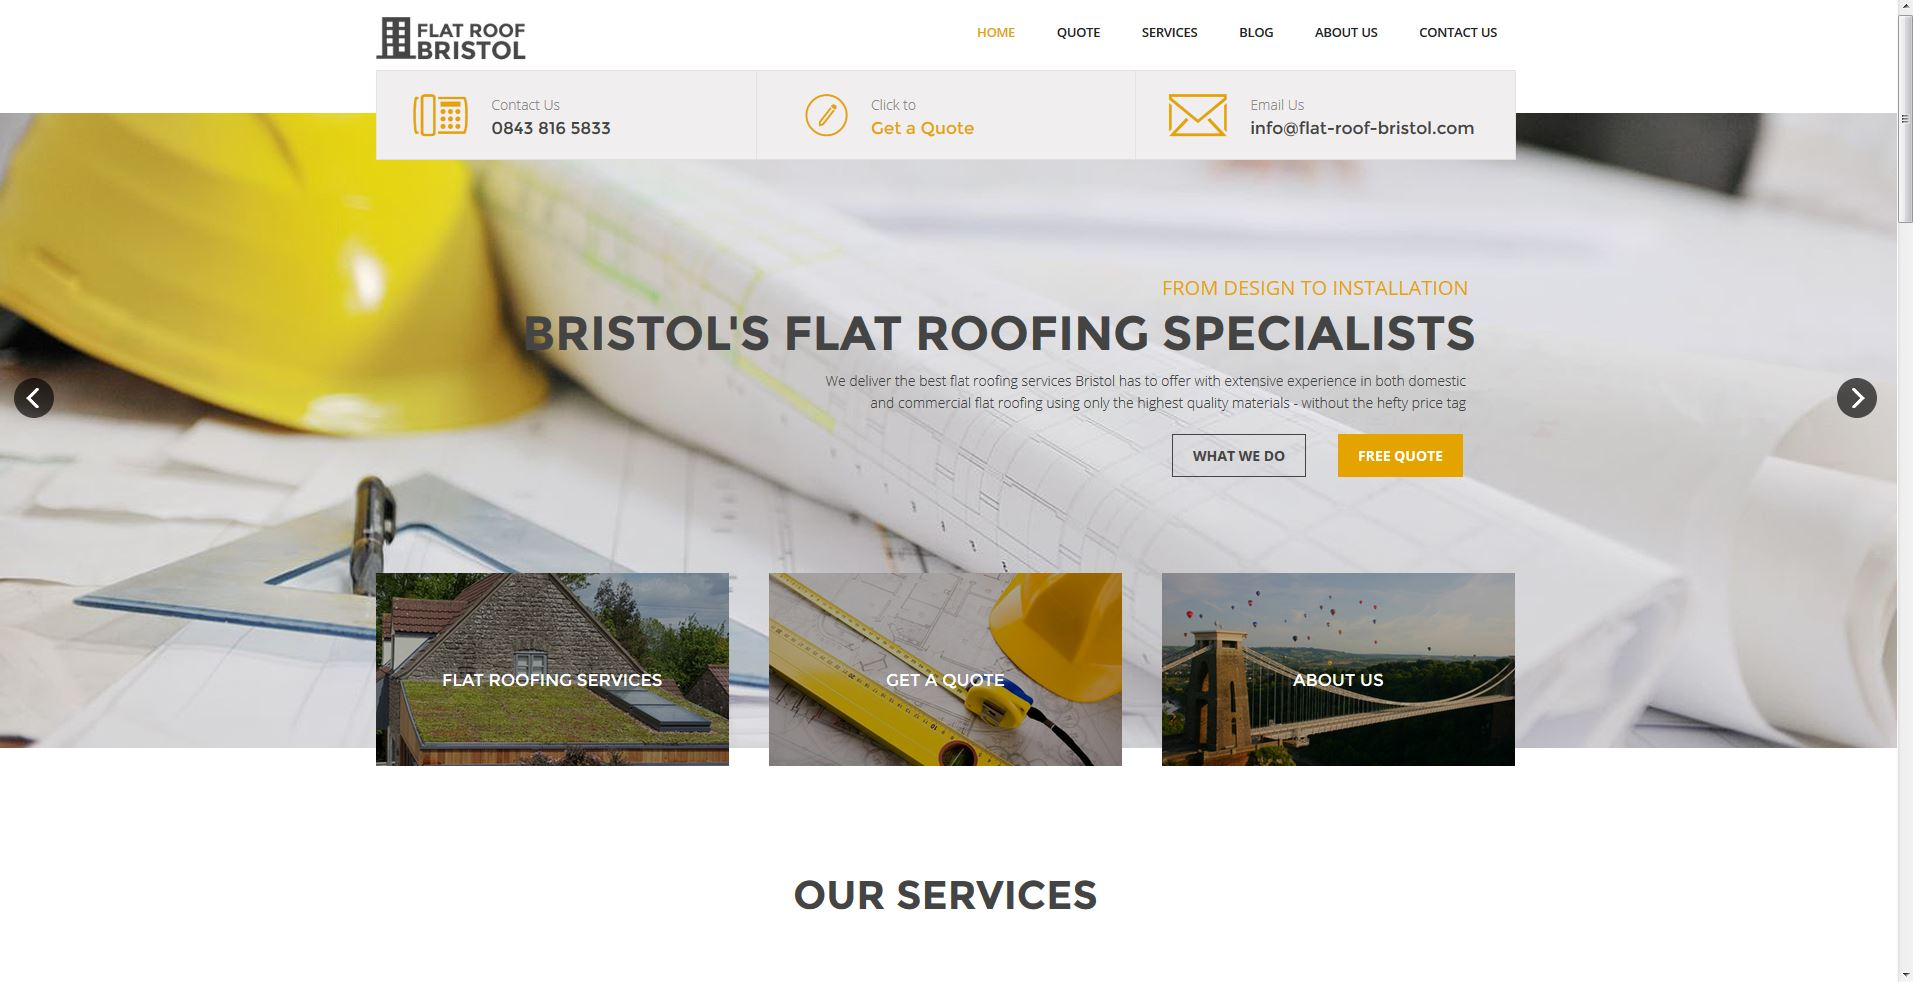 New website for Flat Roof Bristol